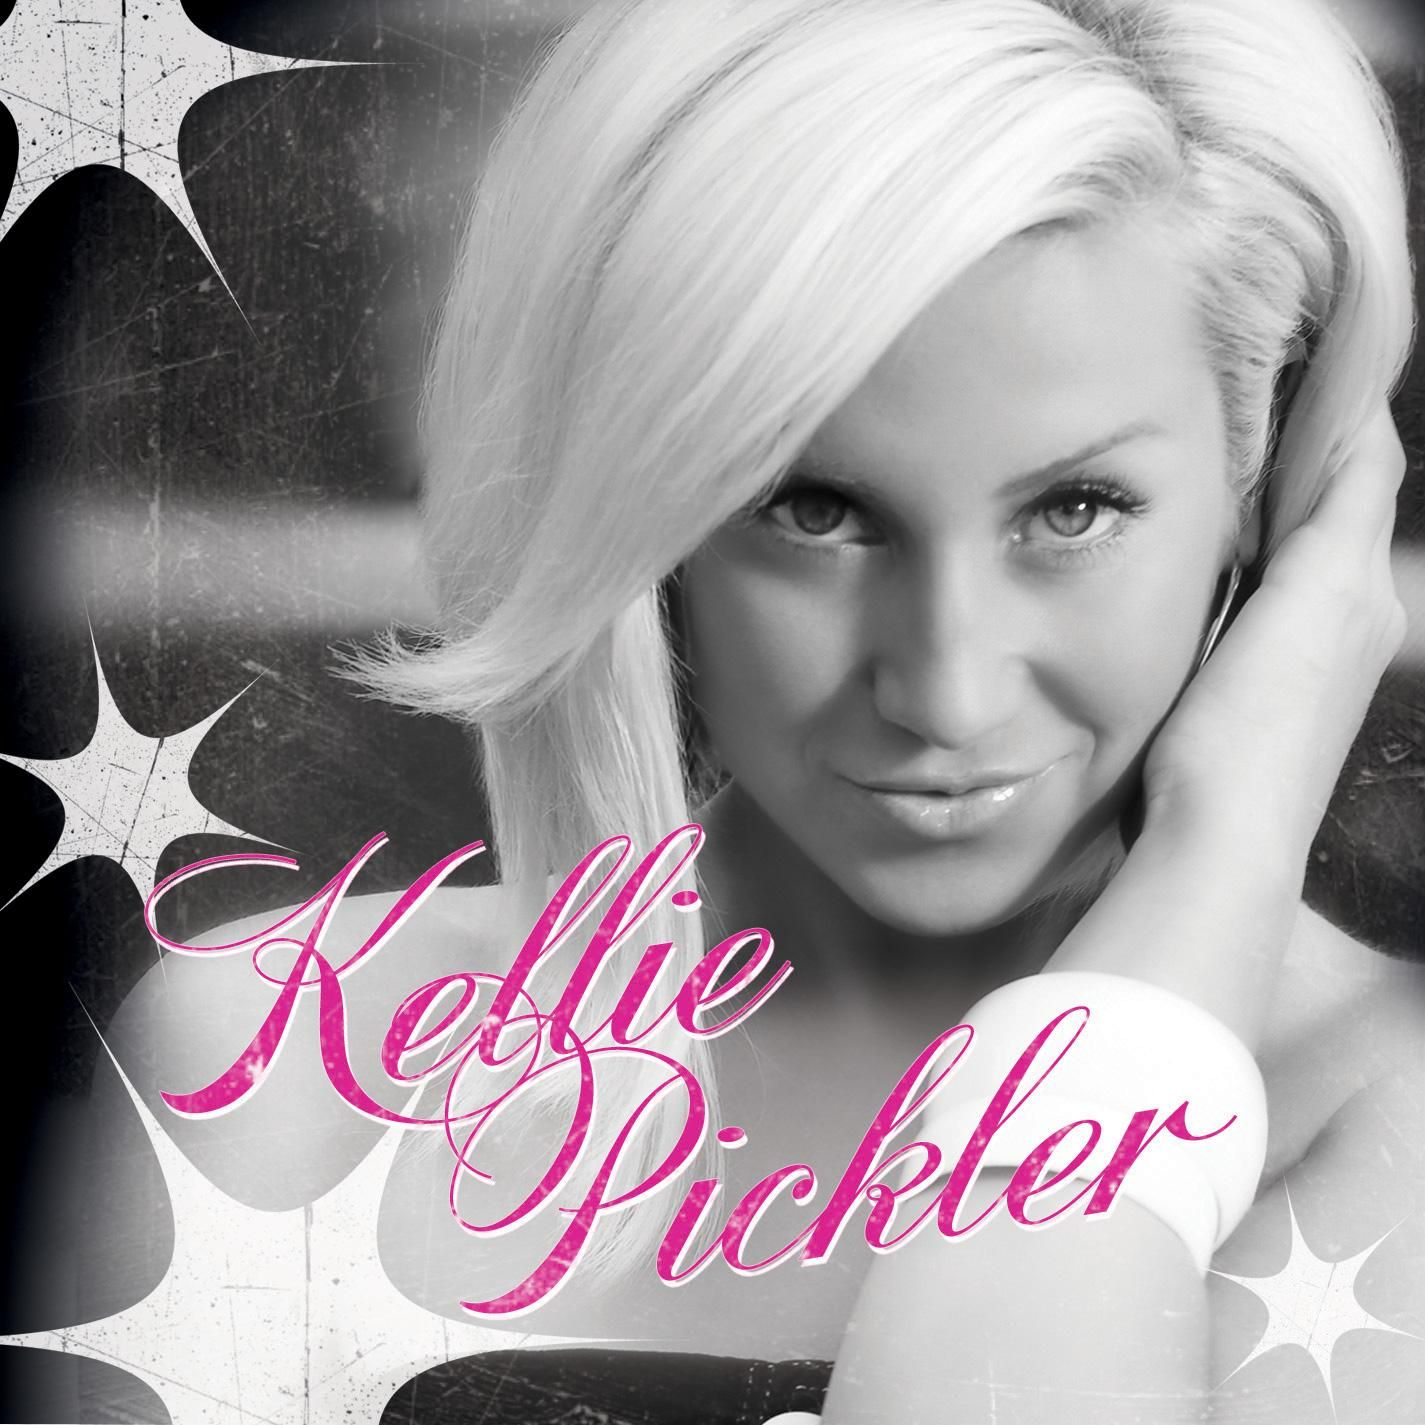 Kellie pickler by kellie pickler inspirational peeps pinterest